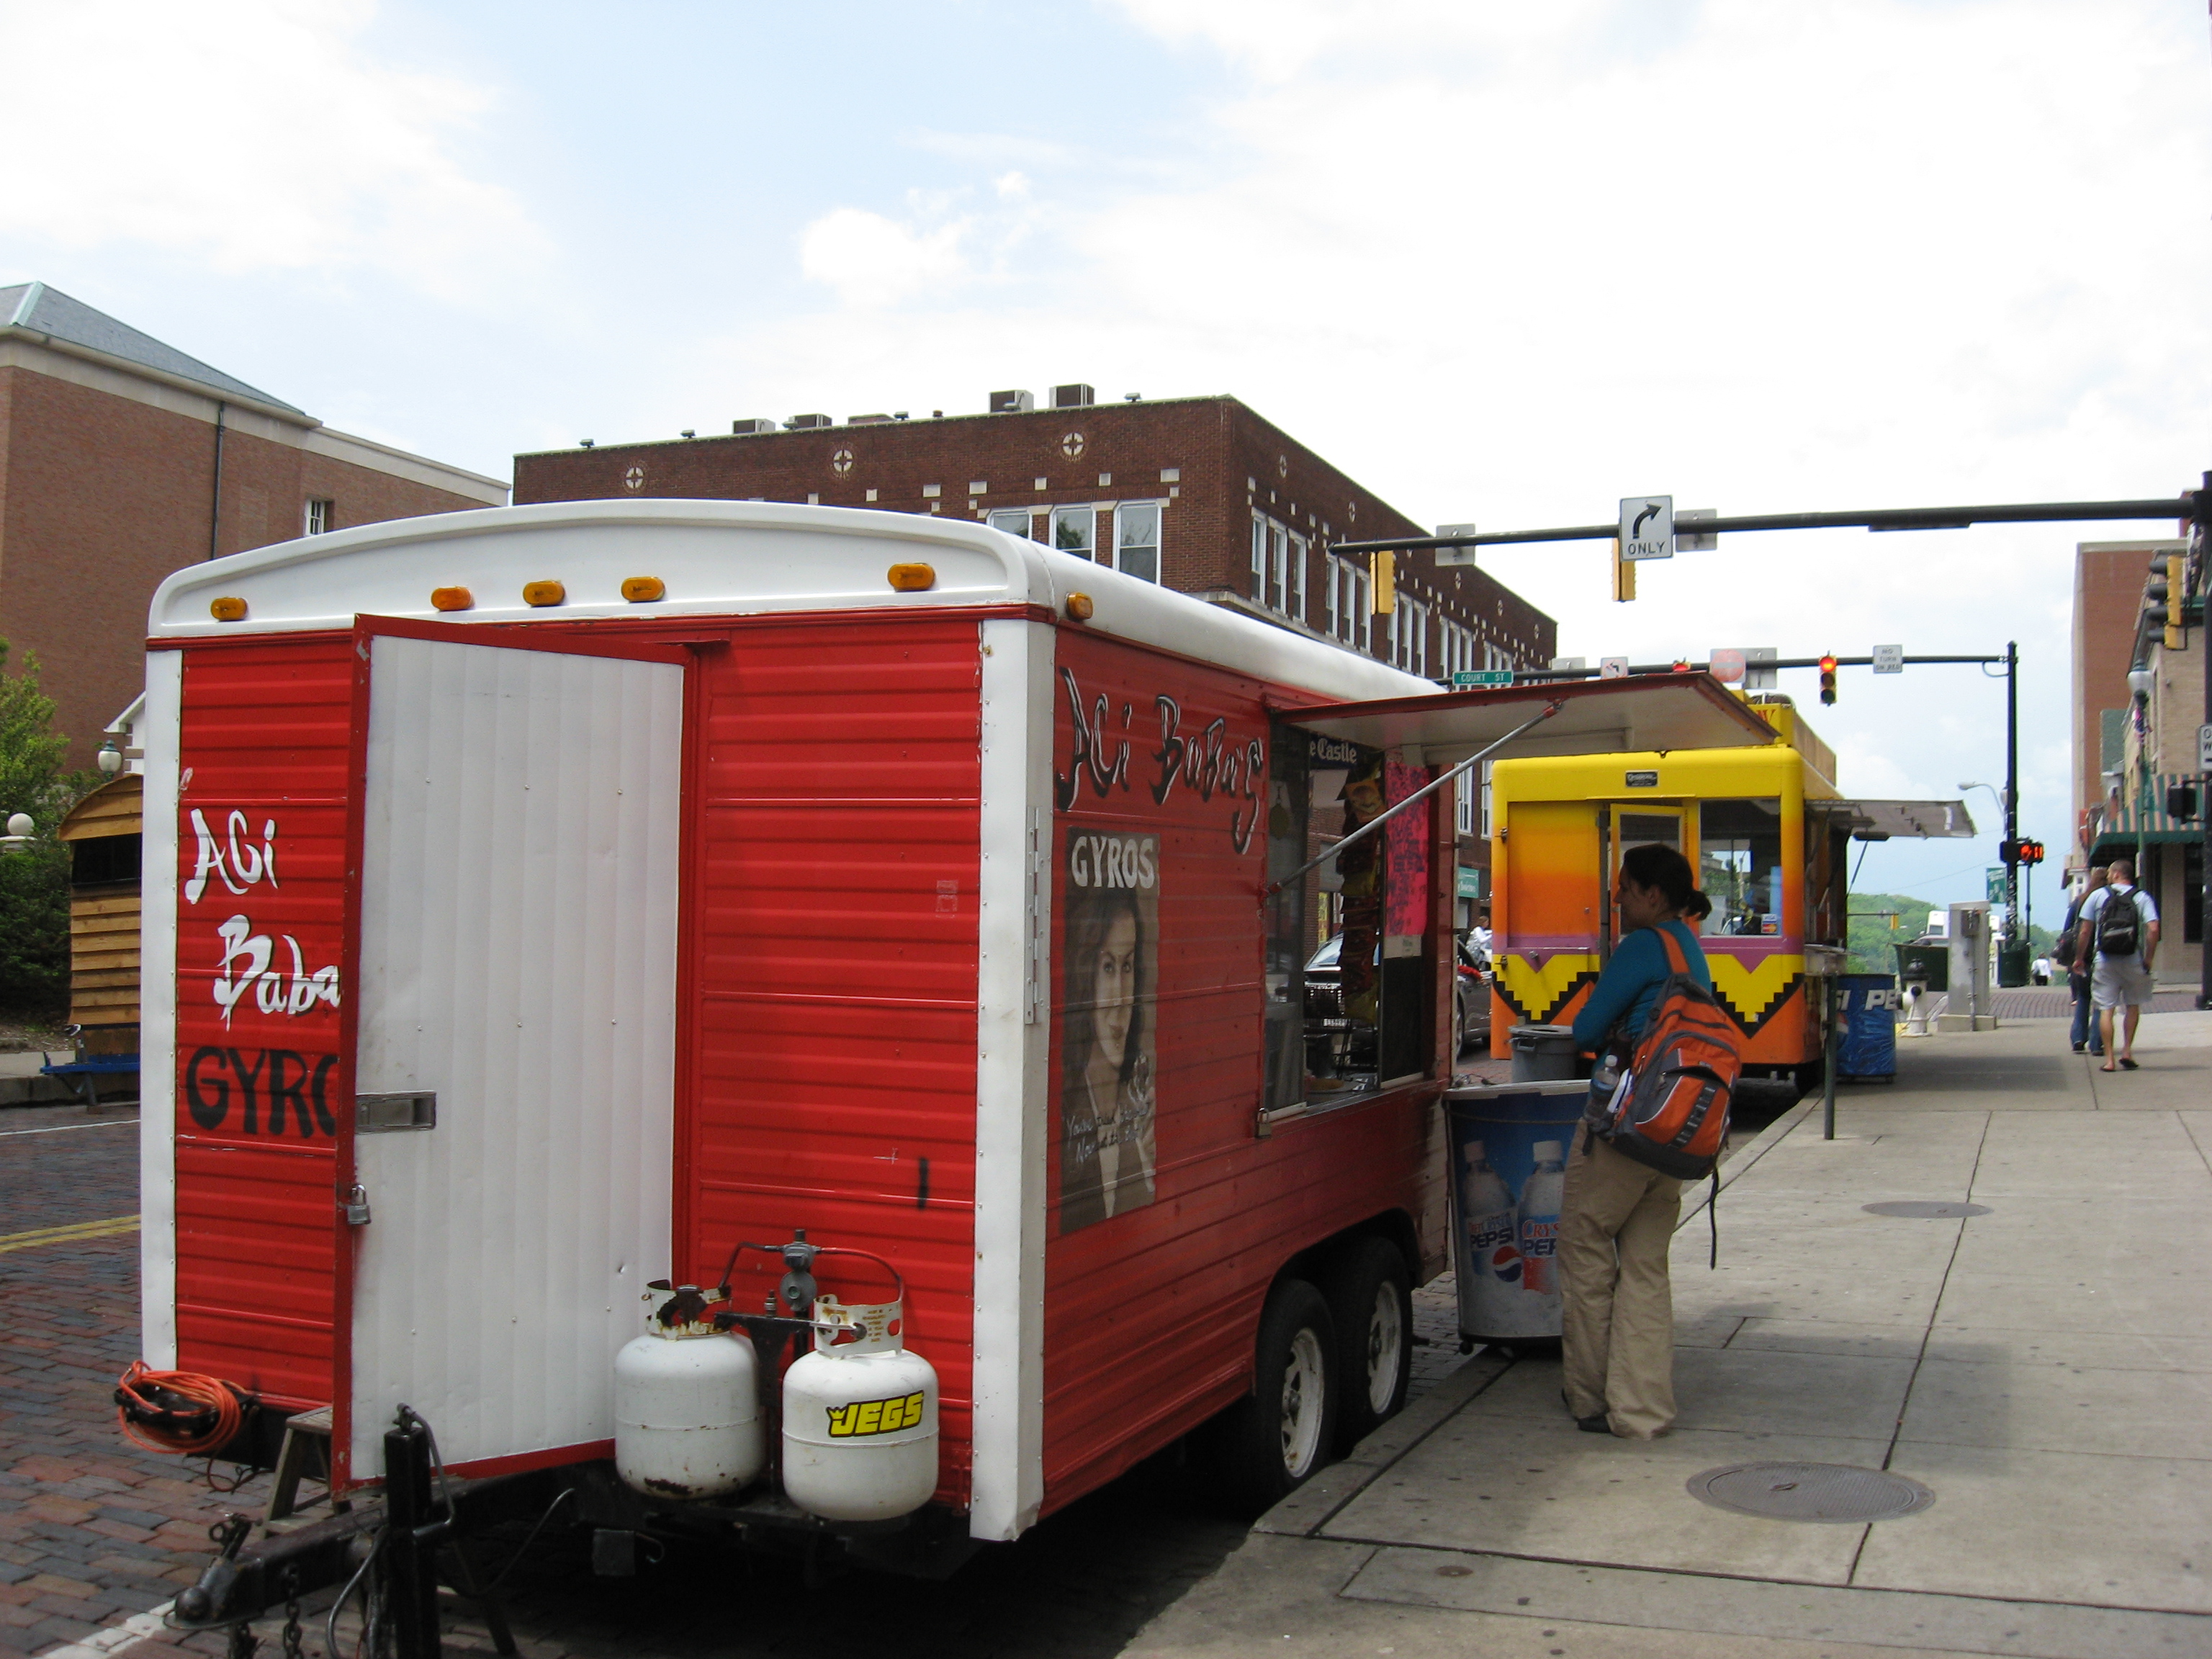 File:Food Carts Athens OH USA.JPG - Wikimedia Commons